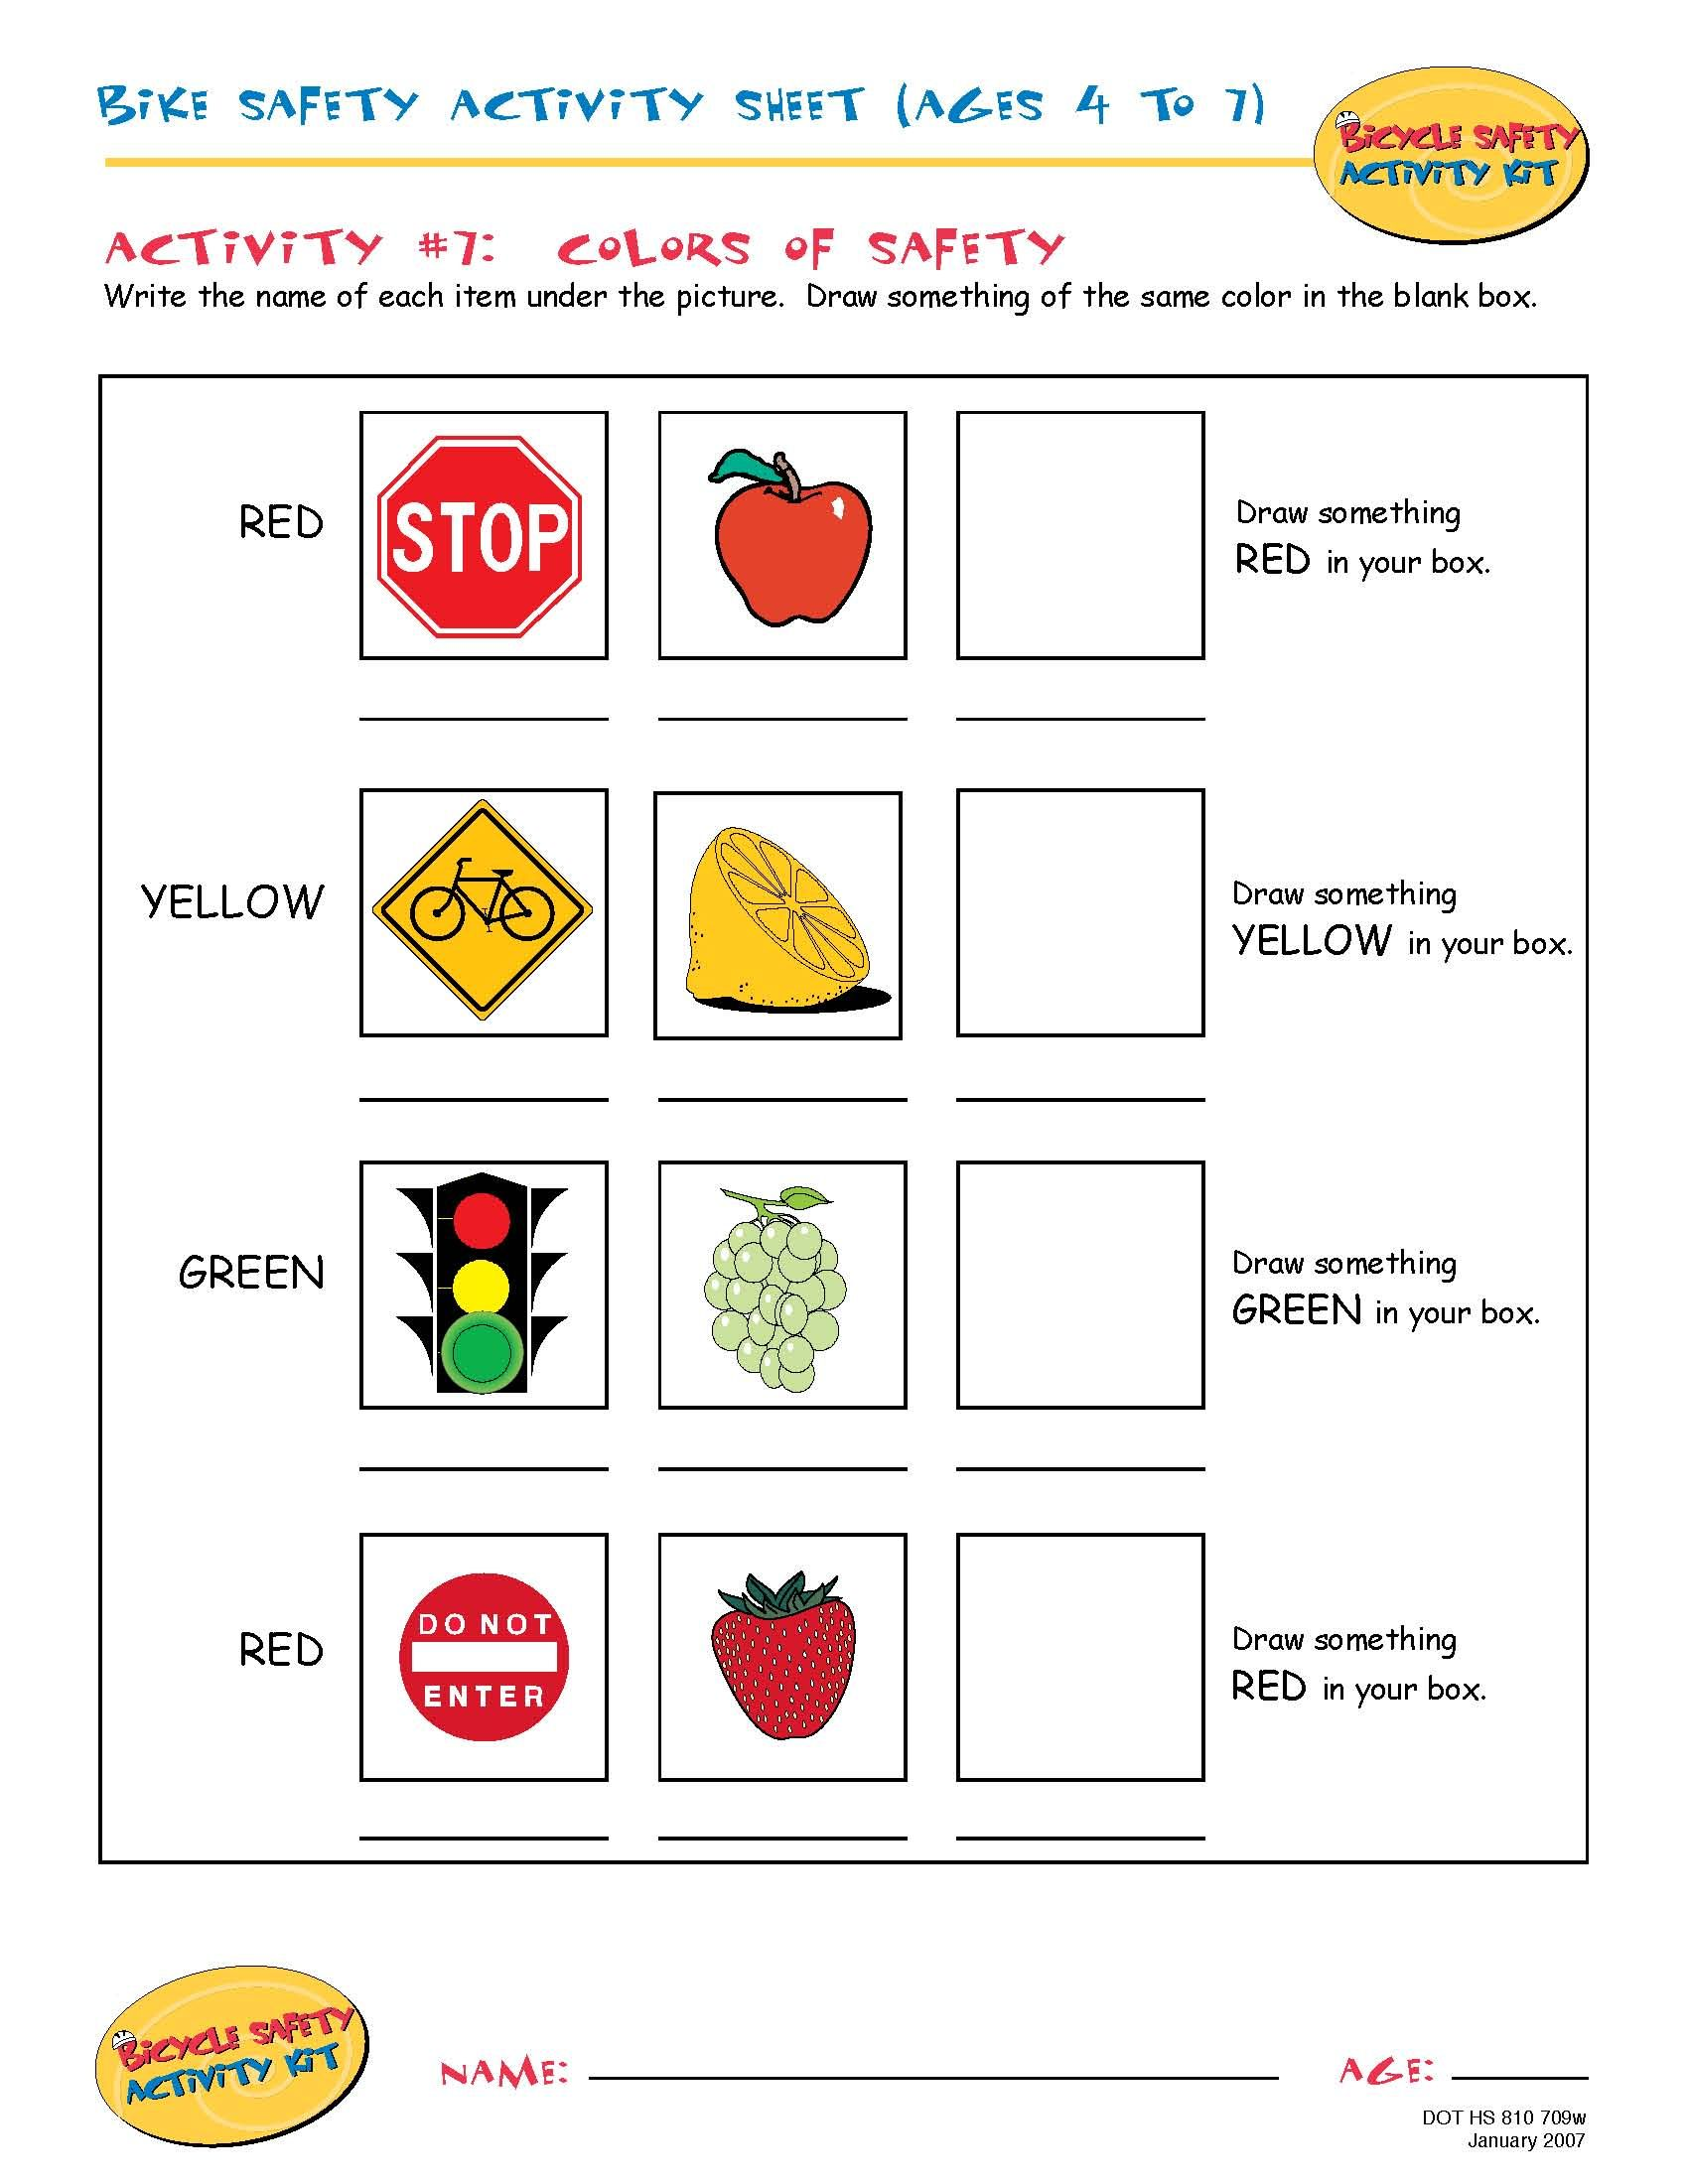 Bike Safety Activity Sheet Ages 4 To 7 Colors Of Safety